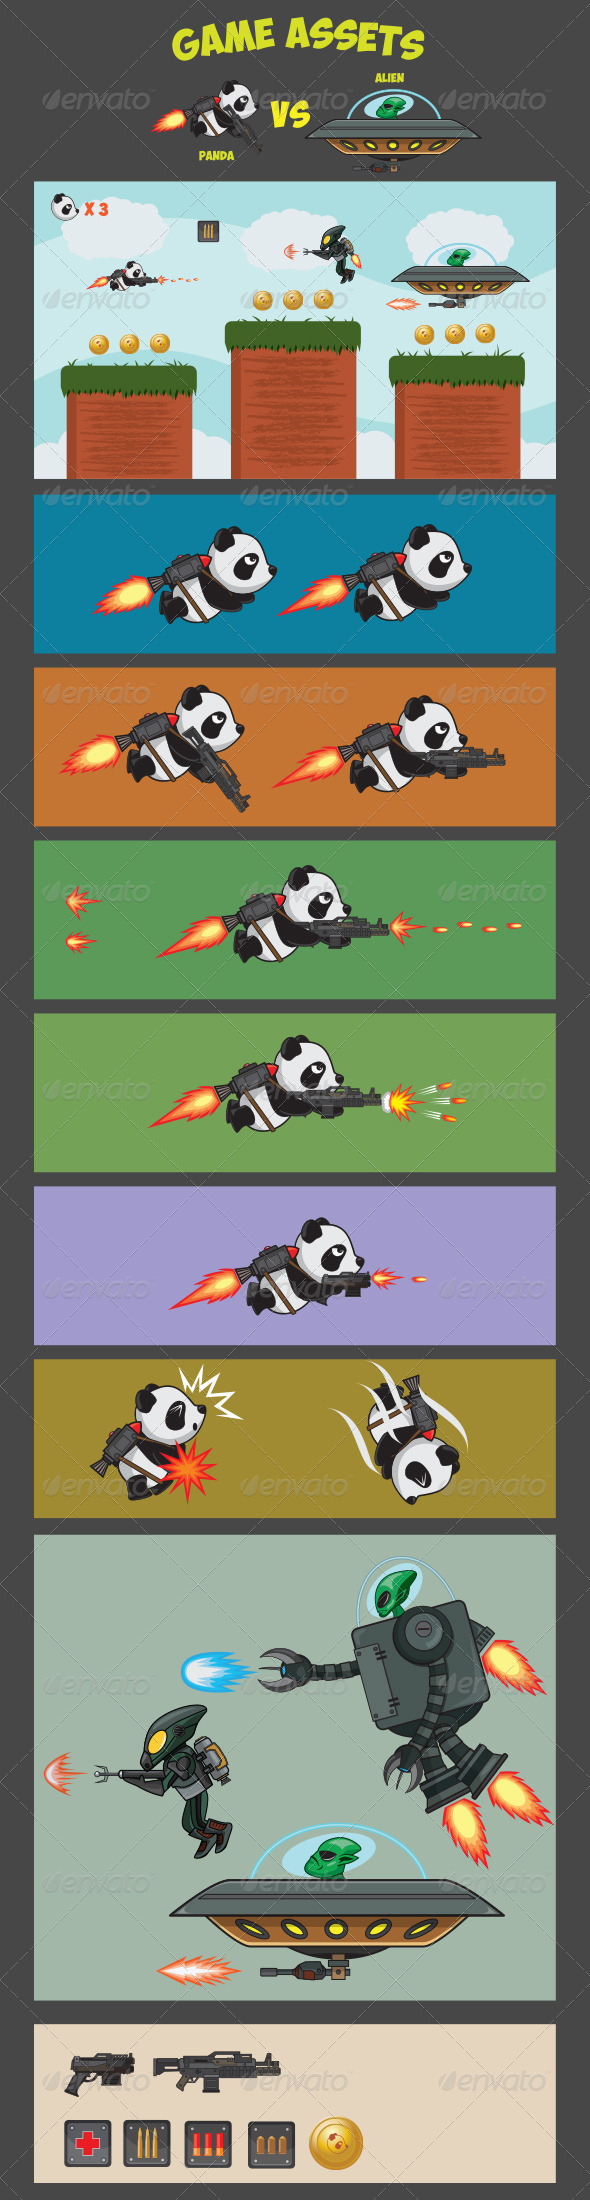 GraphicRiver Game Assets Panda Versus Alien 7216798